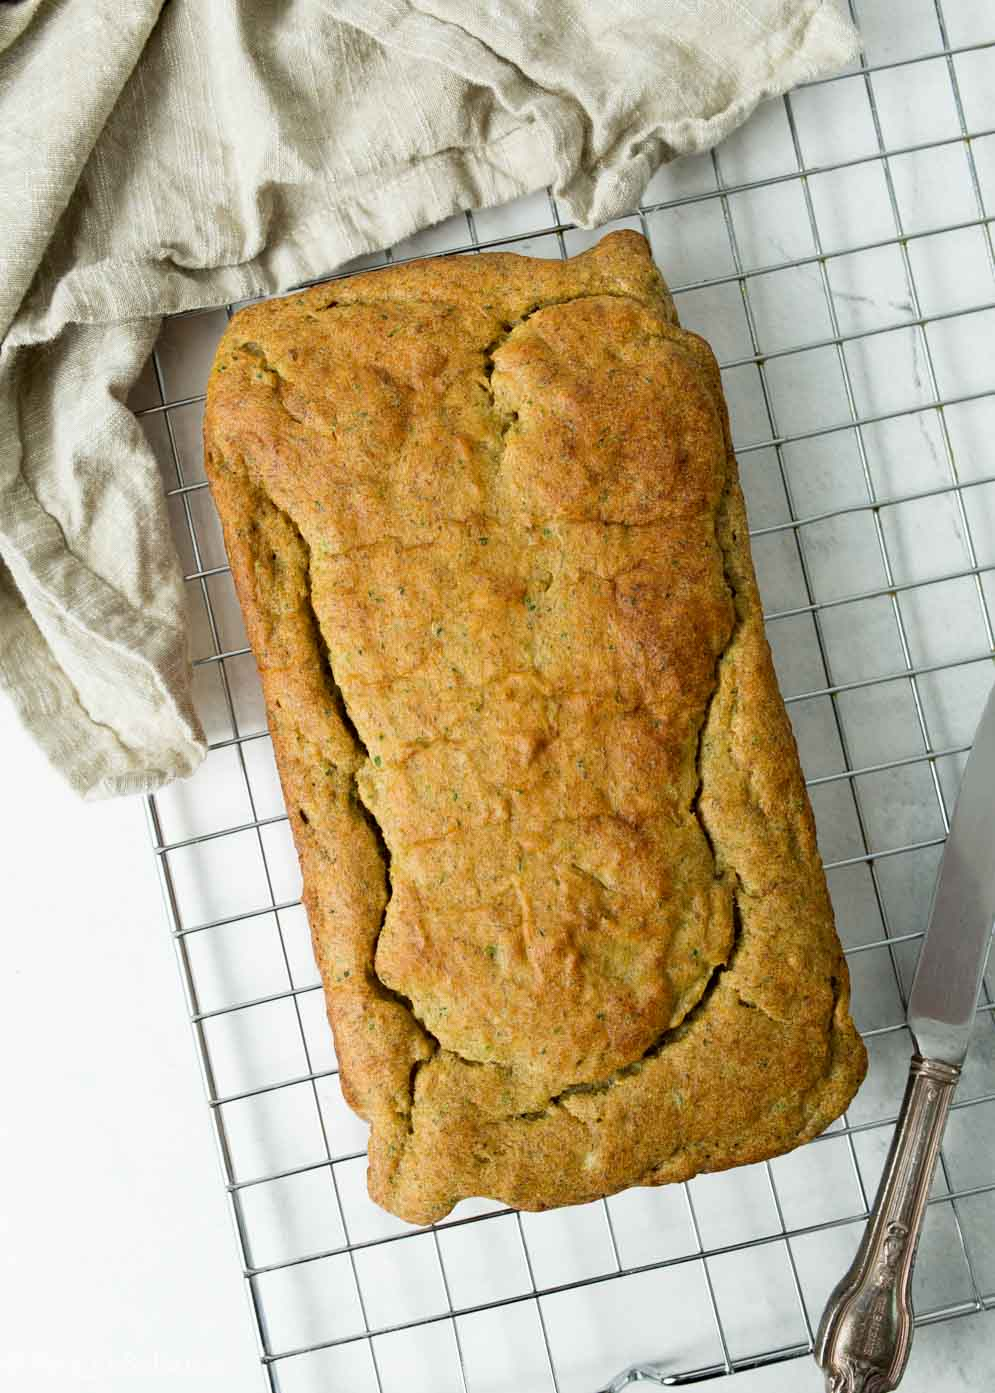 Fresh out of the oven Vegan Gluten-Free Zucchini Bread